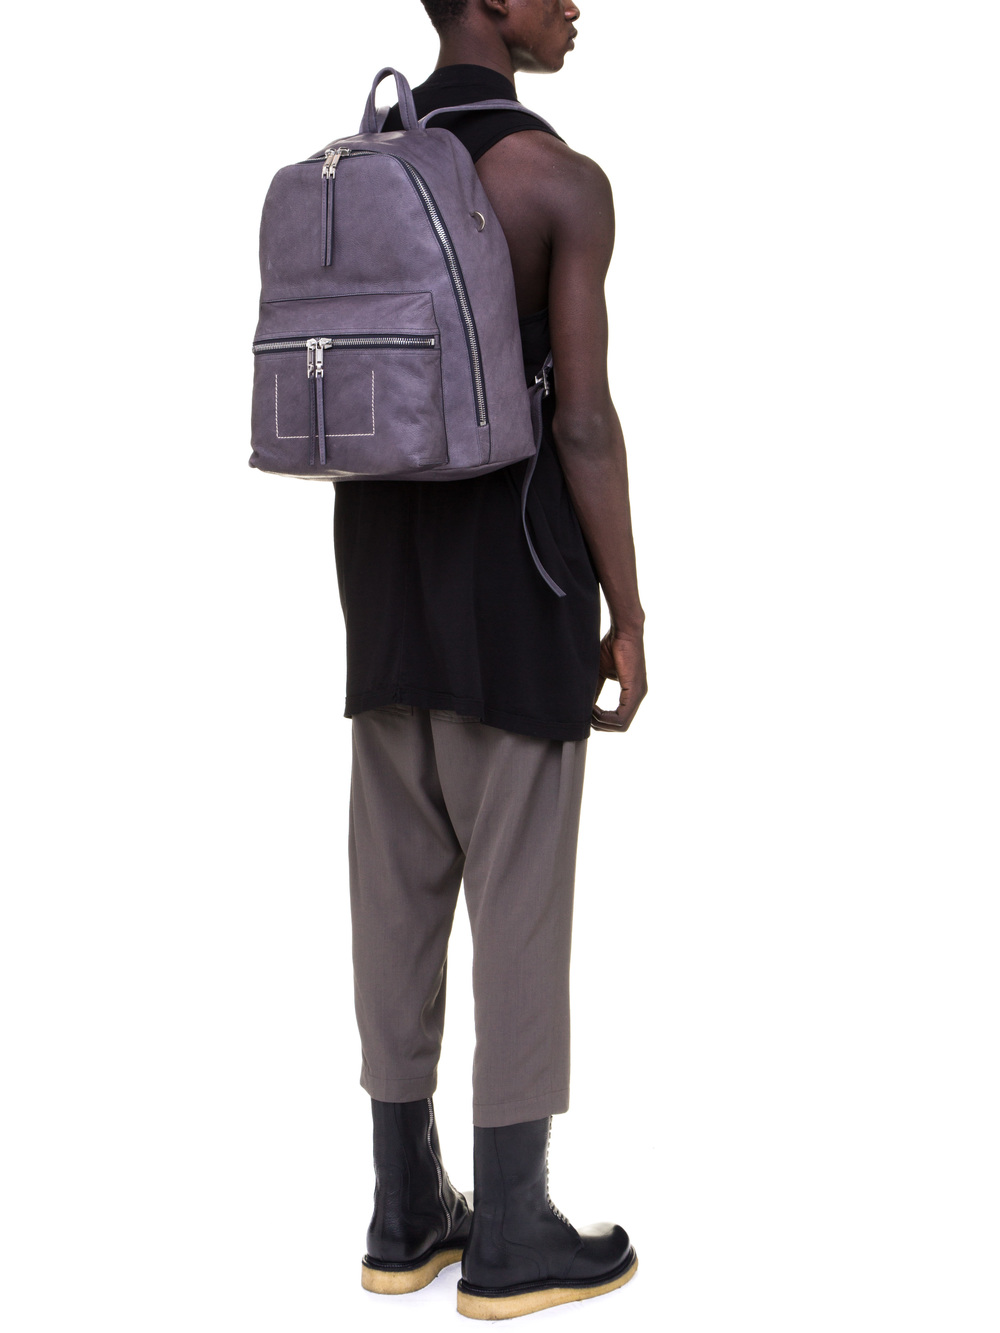 RICK OWENS BACKPACK IN PURPLE CALF LEATHER